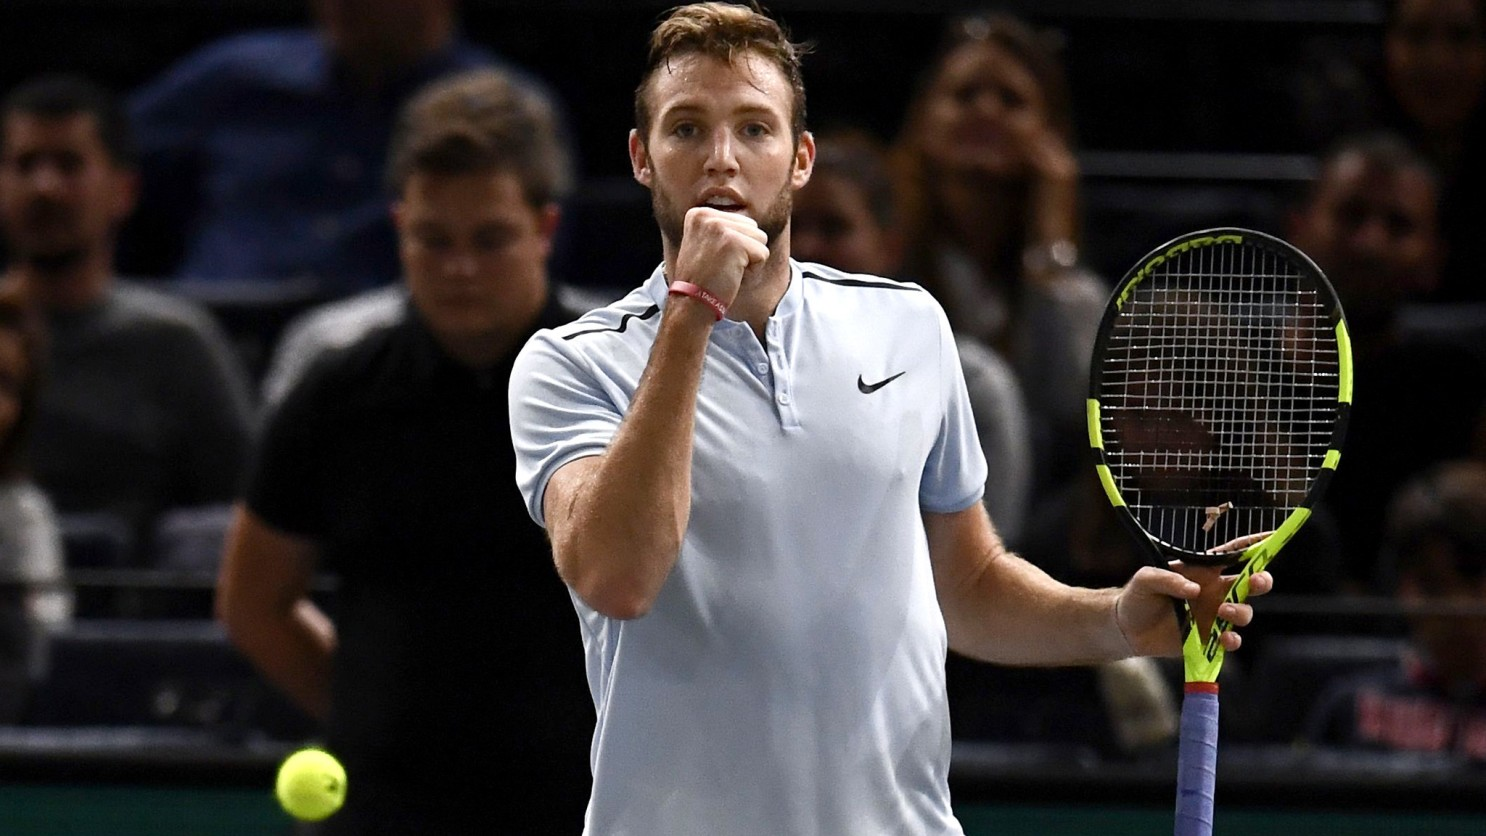 Jack Sock's greatest tennis comeback of all time against Kyle Edmund at the Paris Masters 2017.